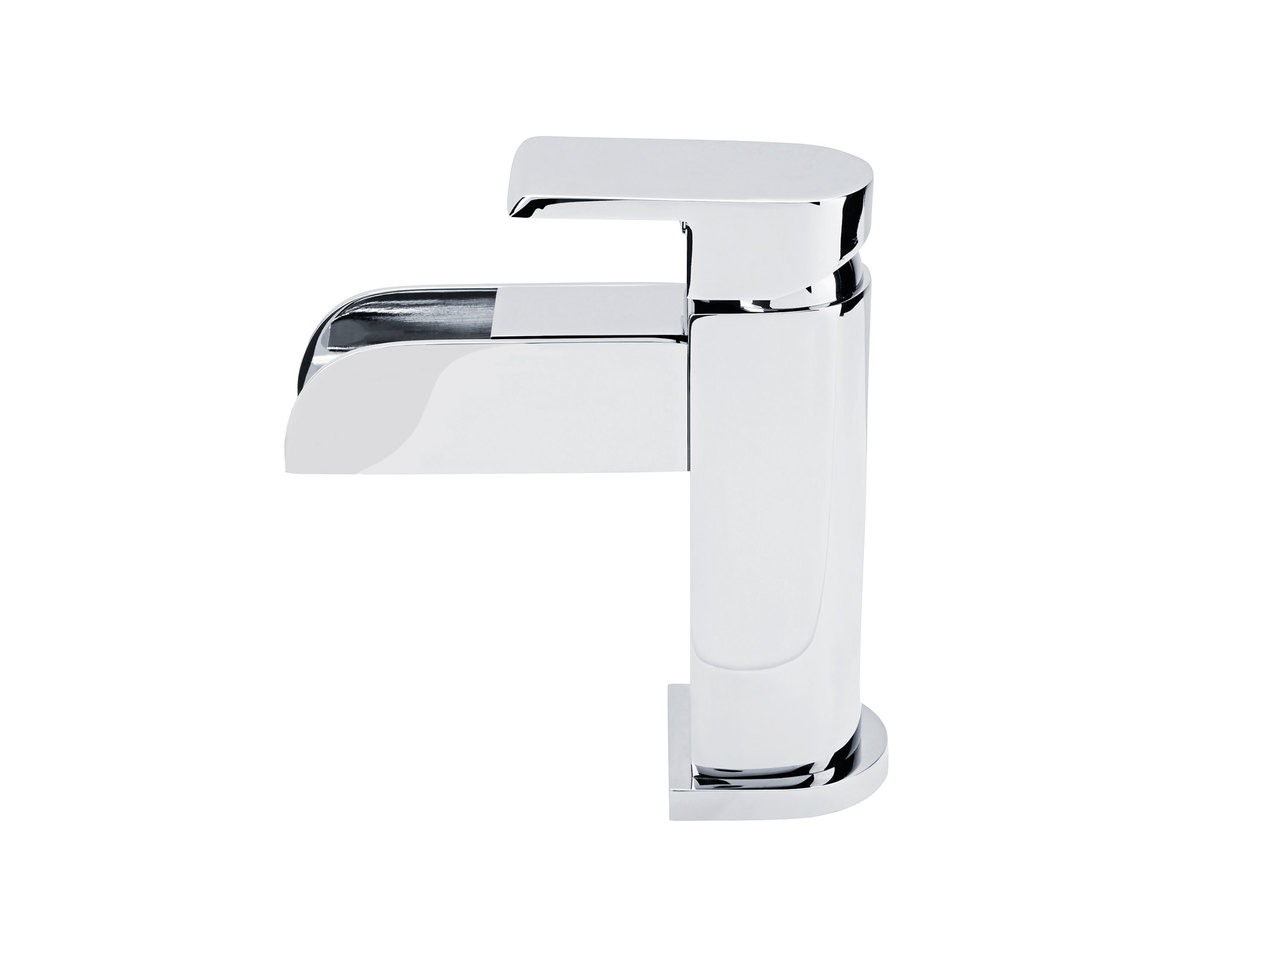 Miomare Bath And Shower Or Basin Led Mixer Tap1 Lidl Great Britain Specials Archive